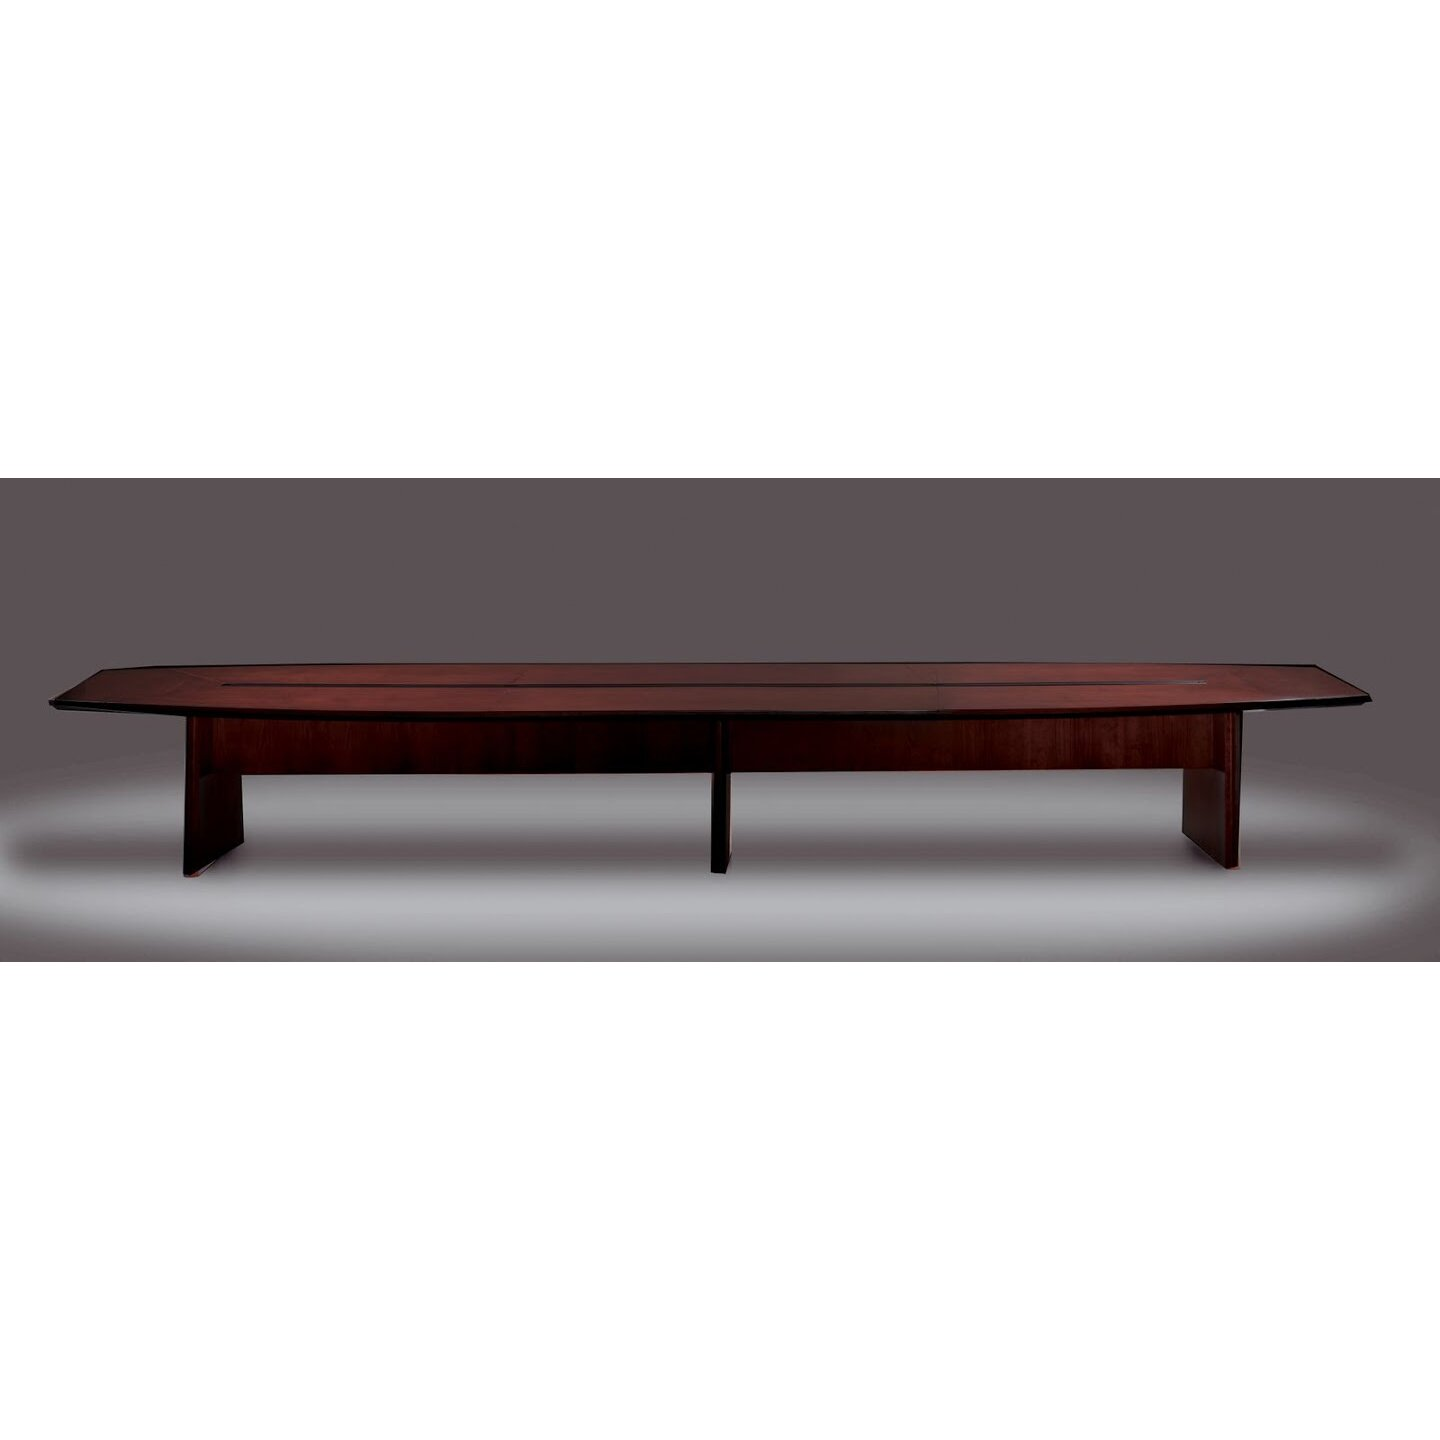 Mayline Corsica Series Boat Shaped Conference Table  : Corsica2B1825272BConference2BTable from www.wayfair.com size 1440 x 1440 jpeg 67kB